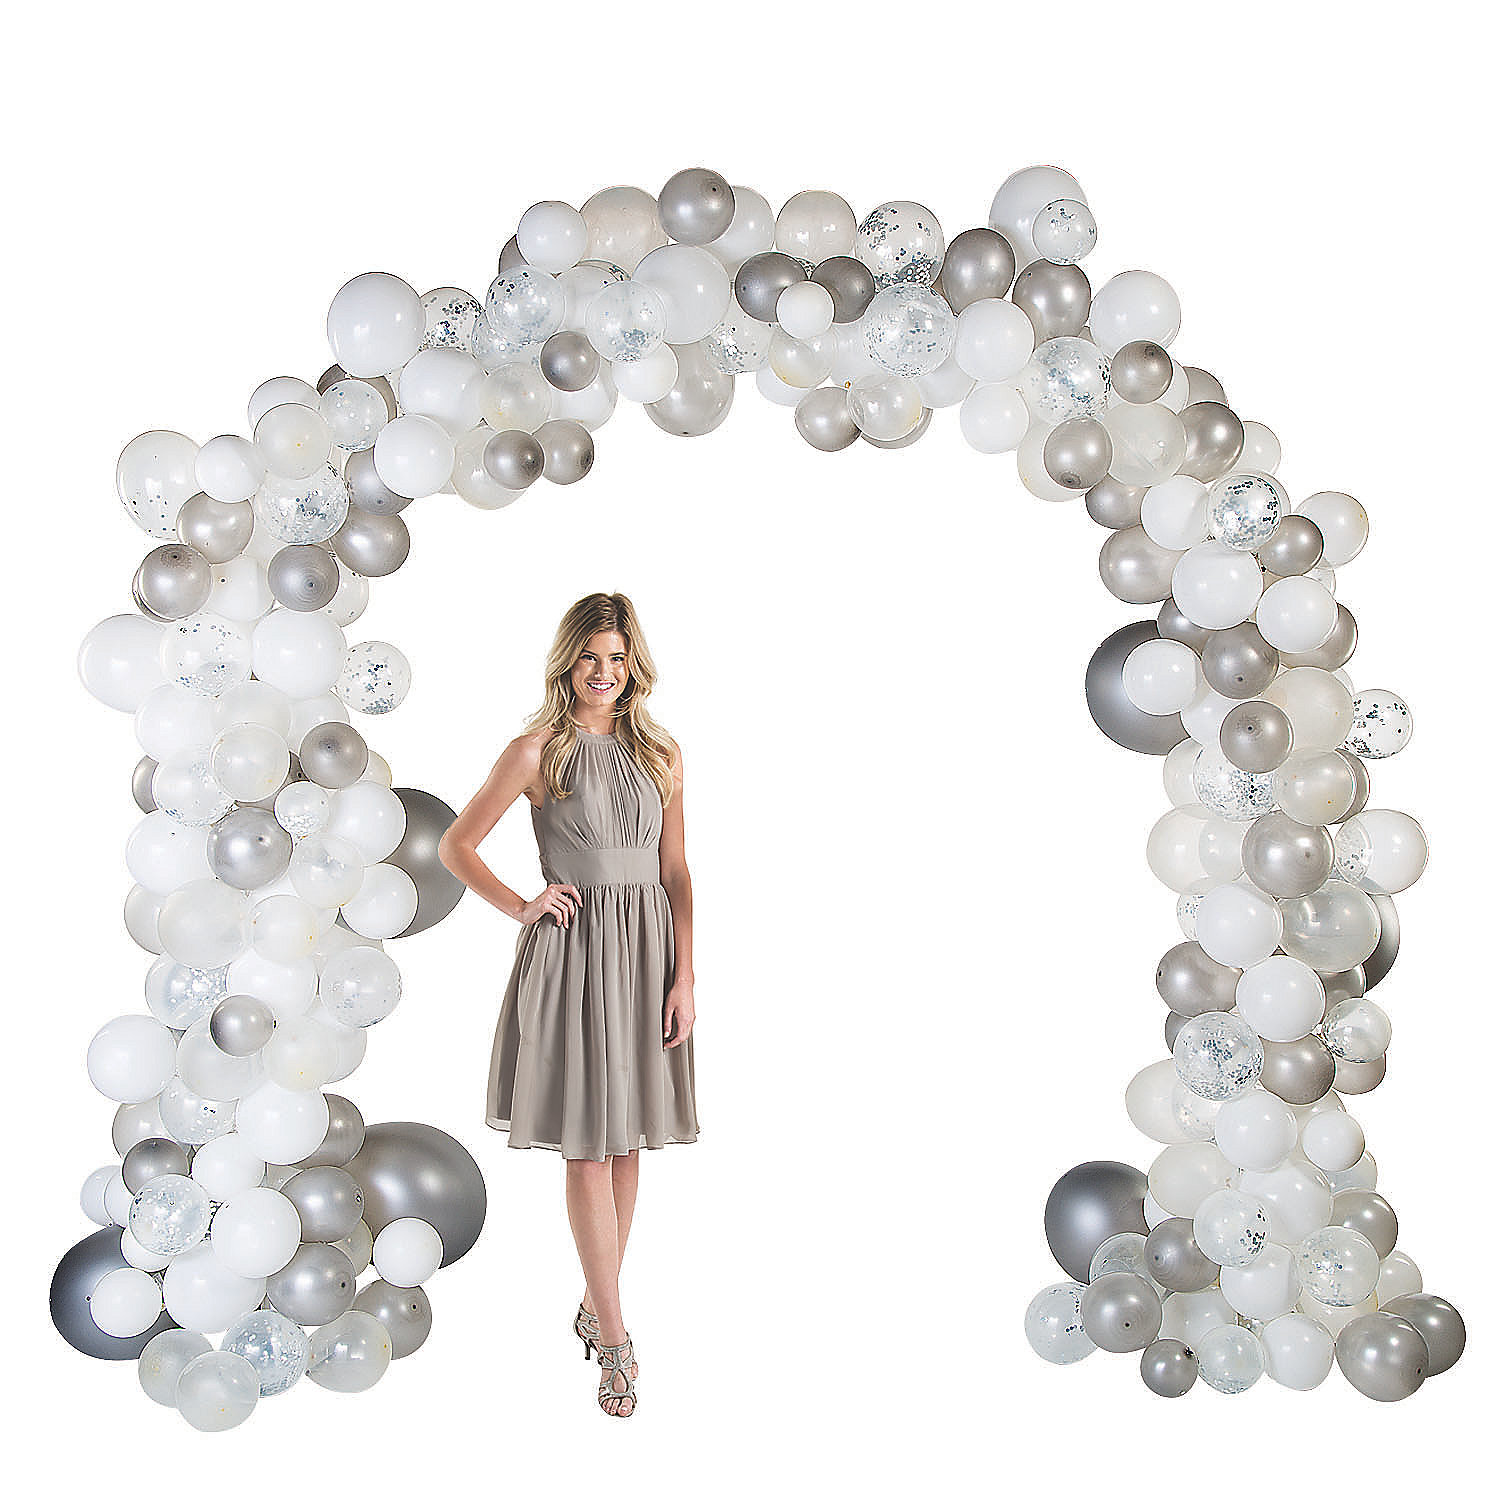 Balloon Frame - Arch - Oriental Trading